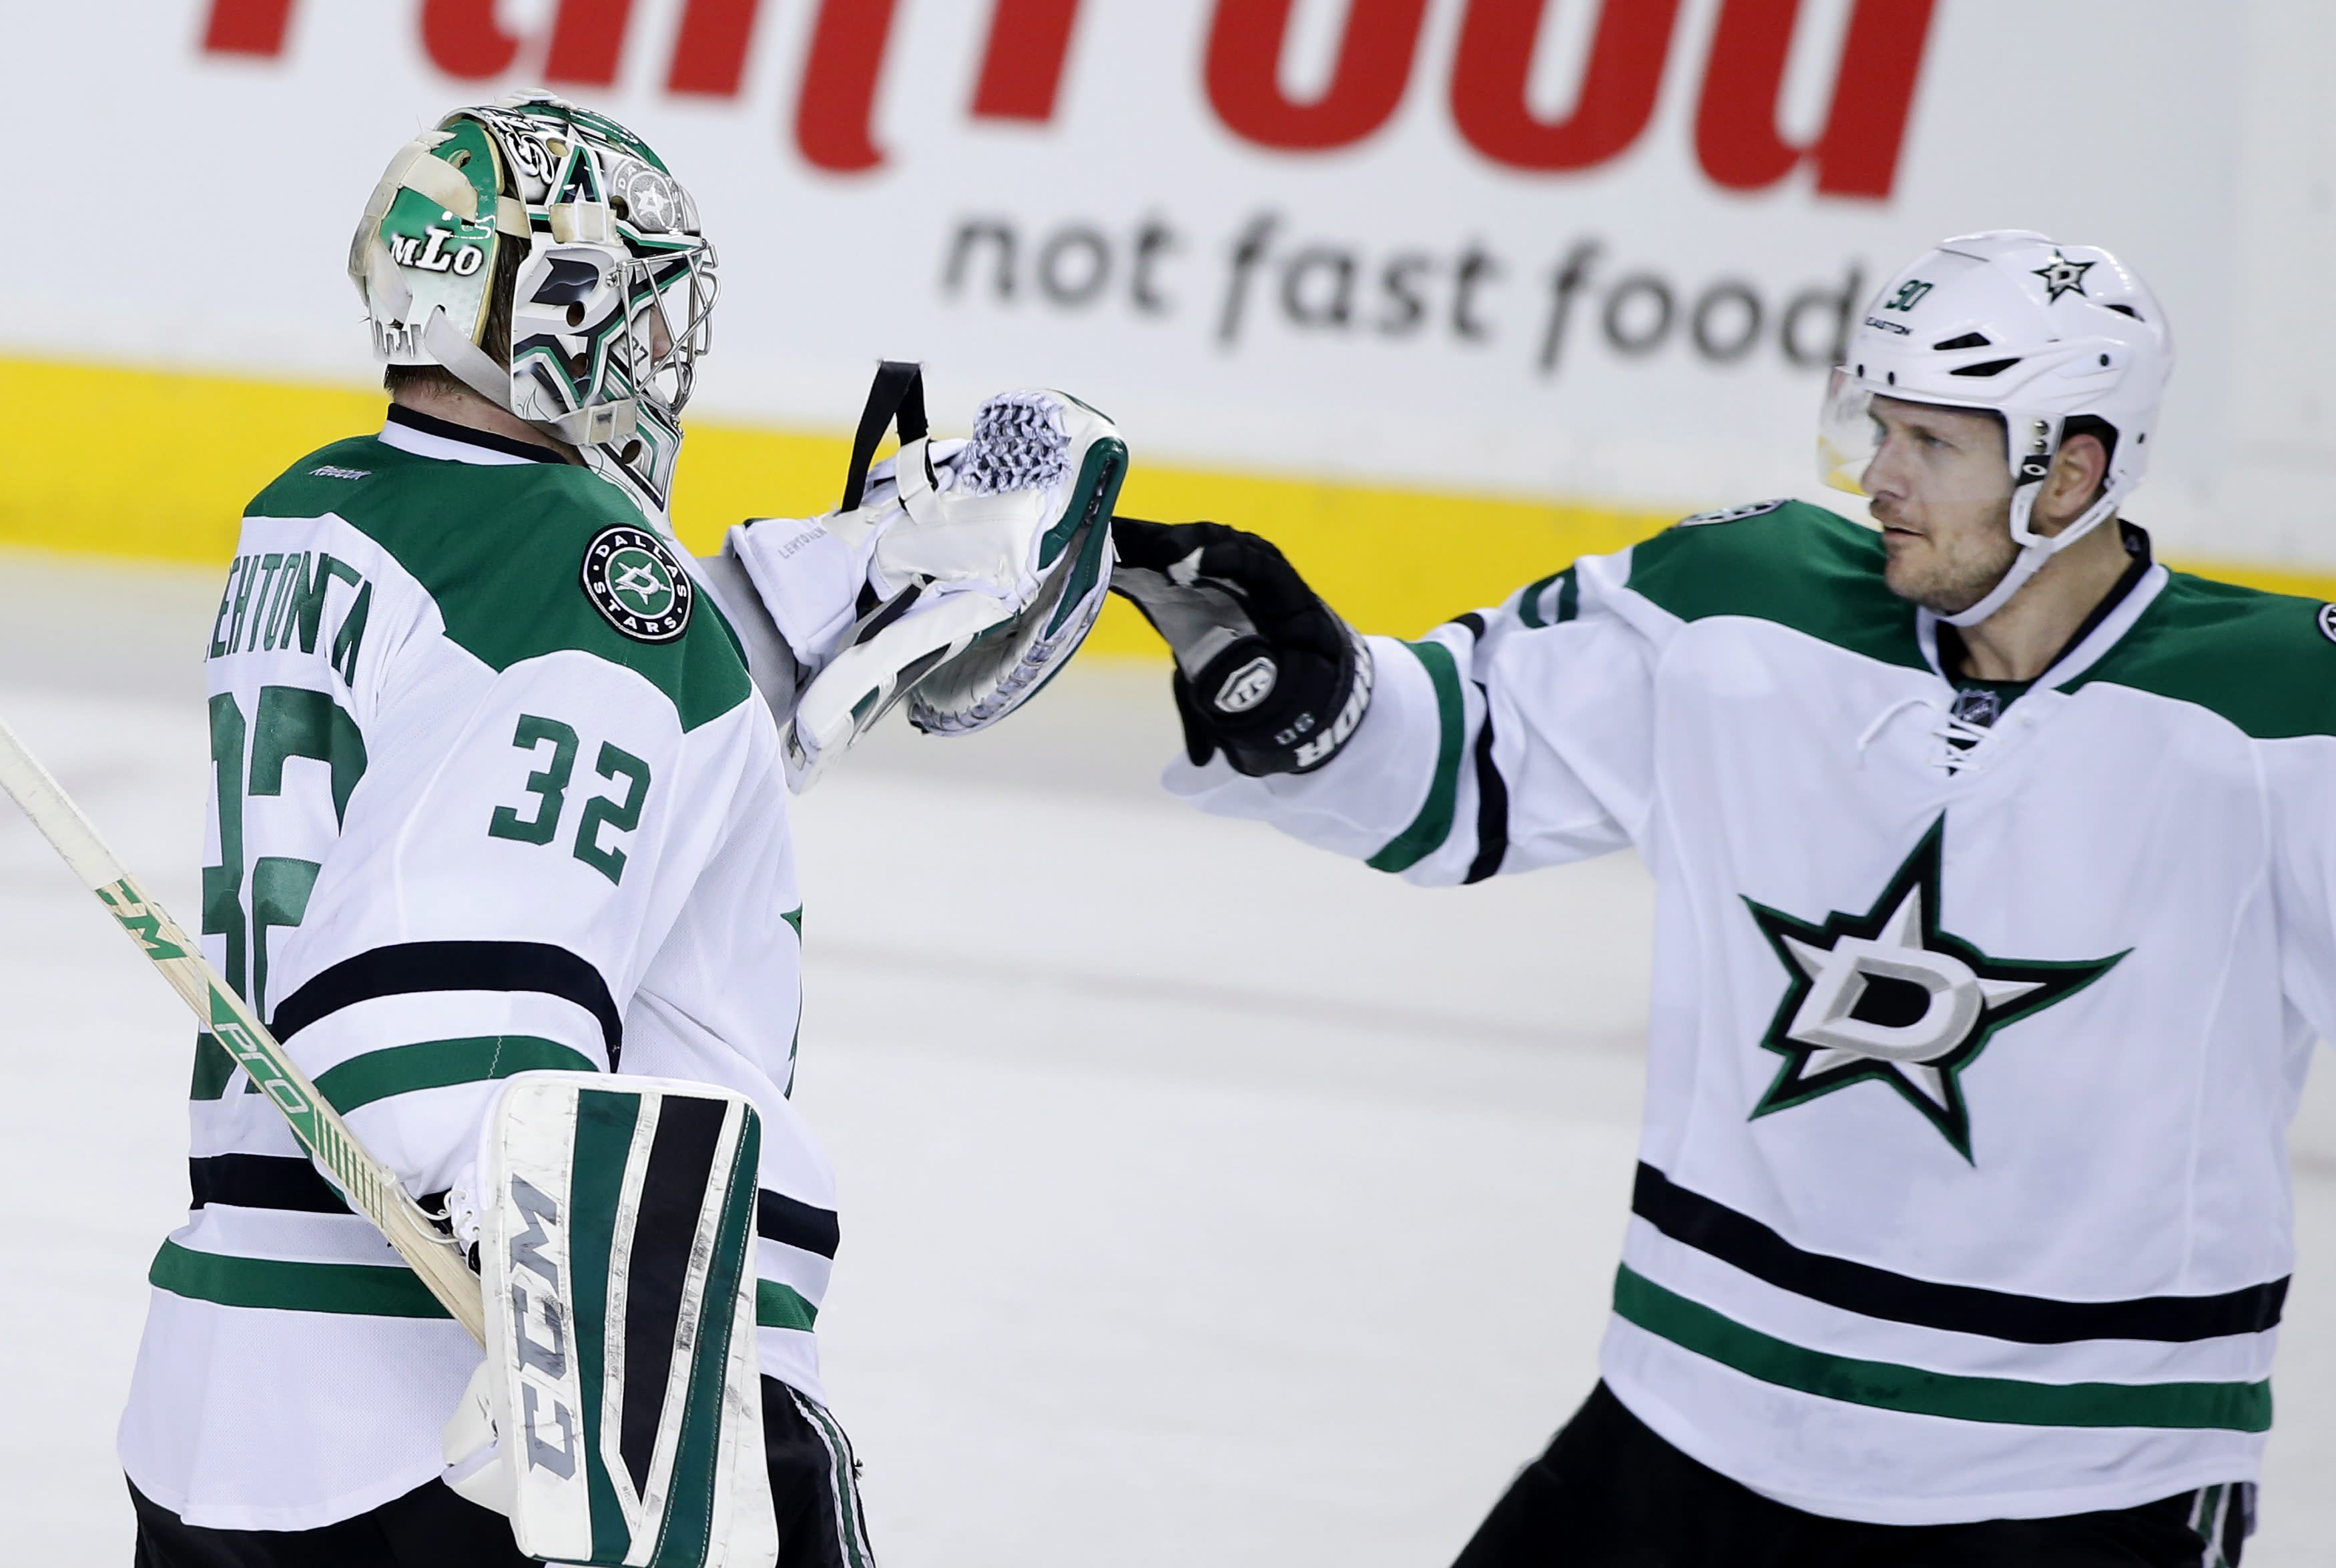 Hemsky scores 2, Seguin gets SO winner as Stars beat Flames